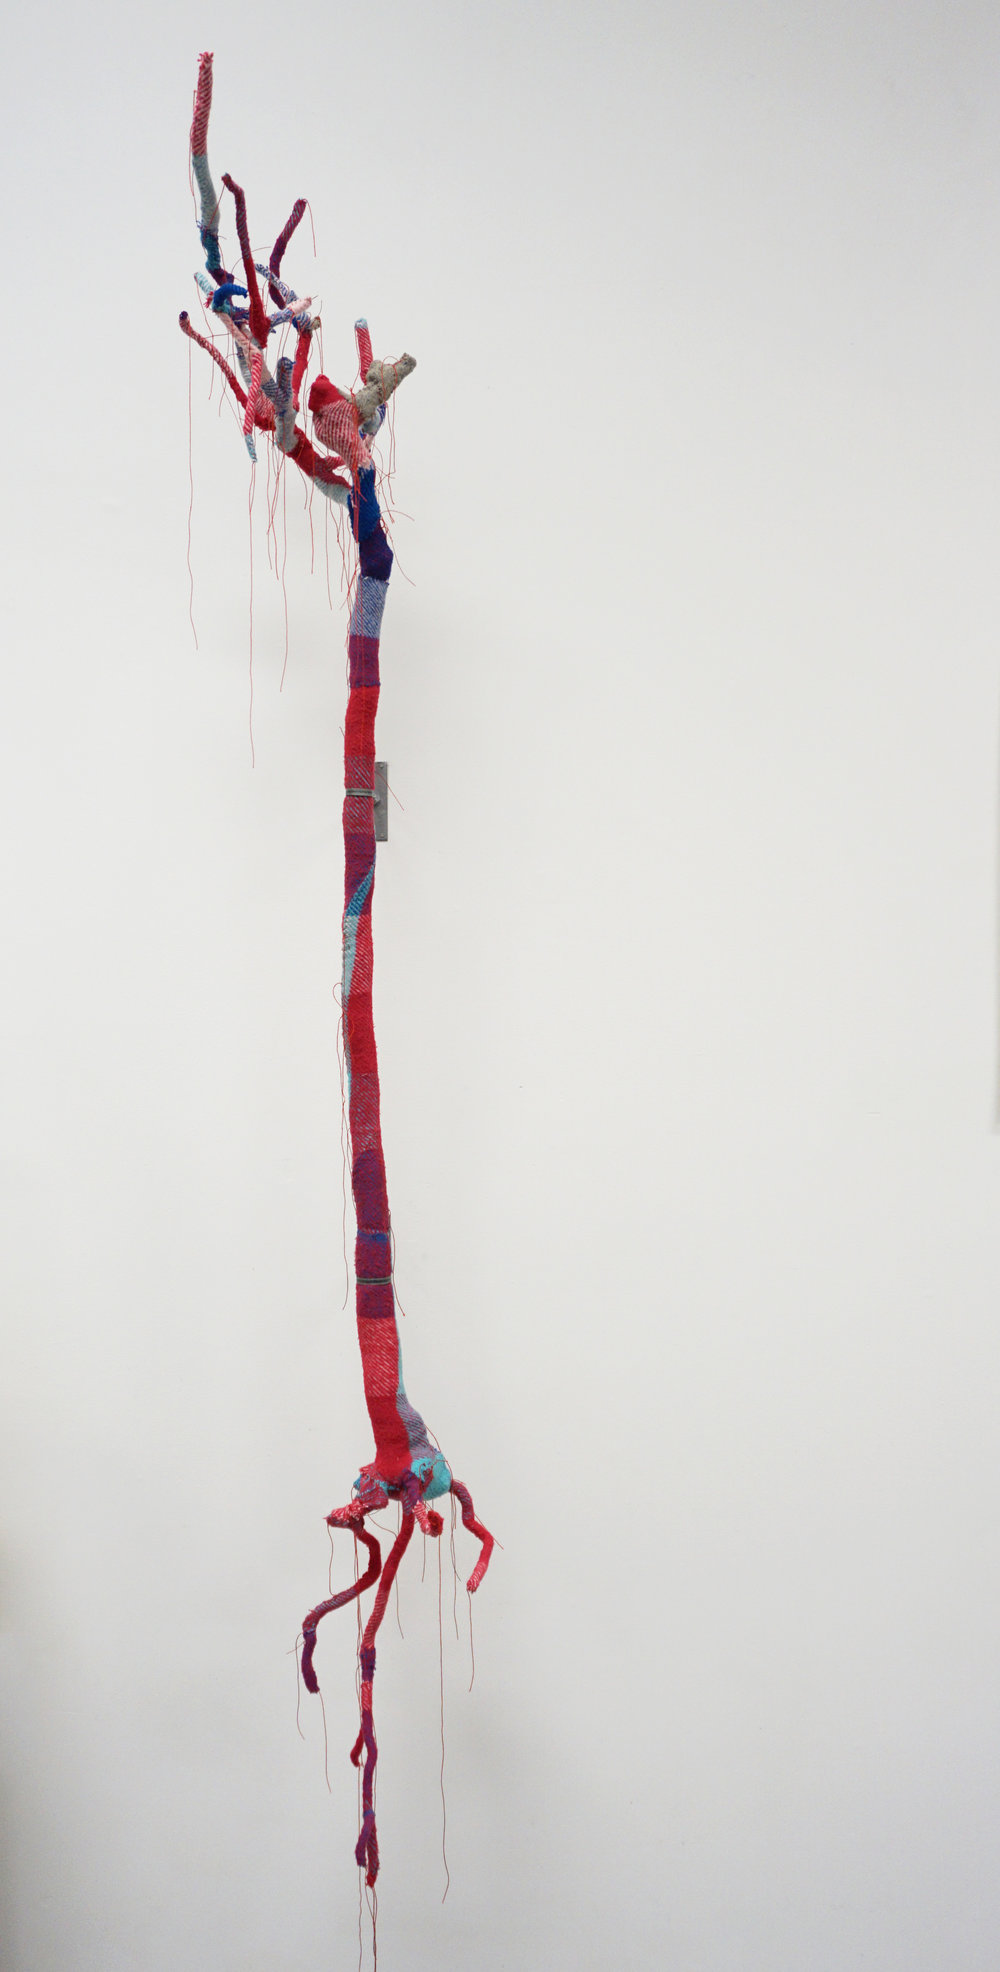 Olga Cironis,  Roses are red, violets are blue, I truly dearly love you I , 2018, rose bush, woollen blanket and thread, 170 x 50 x 50 xm POA